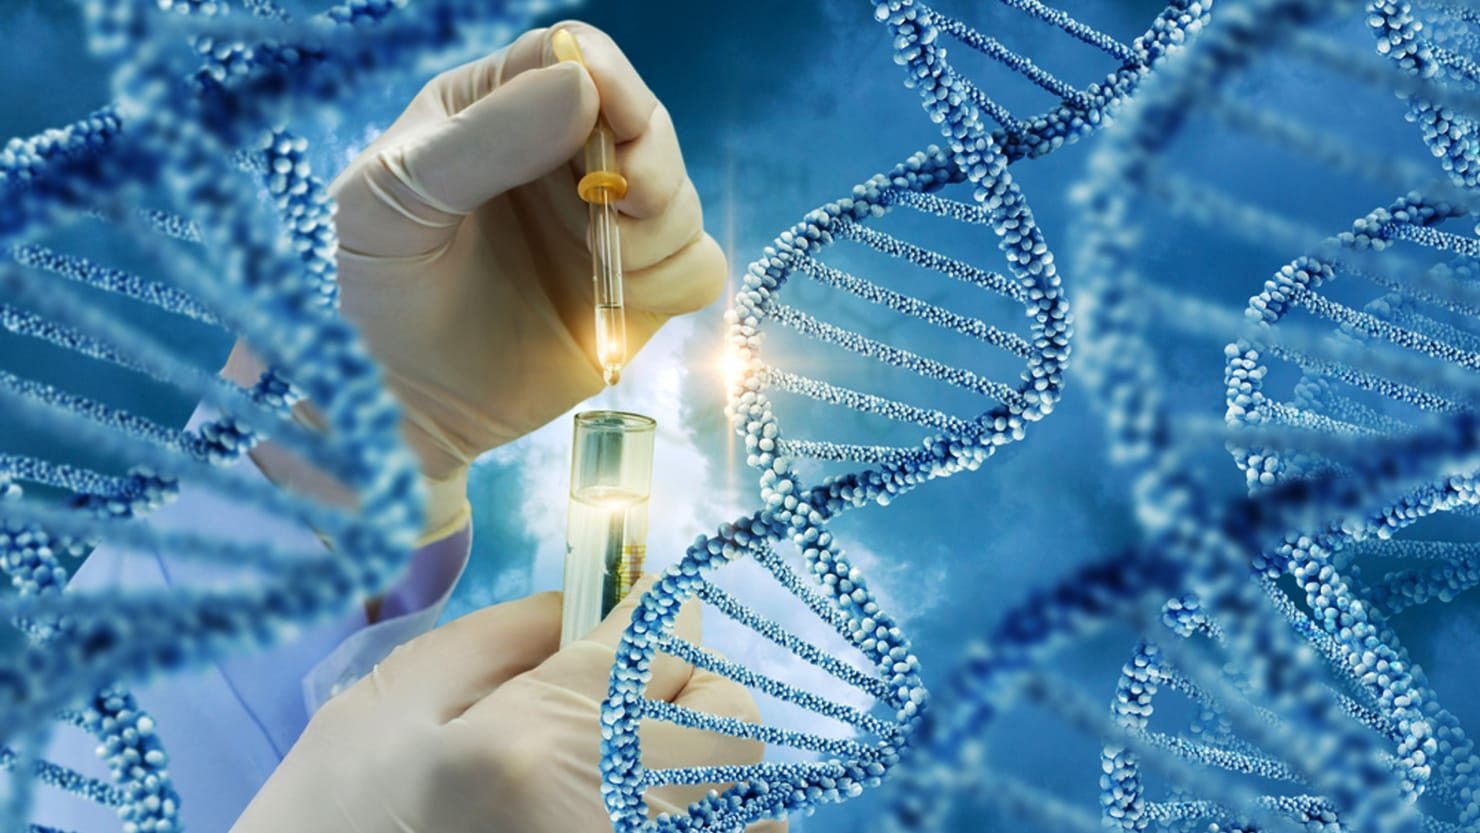 gloved scientist hand surrounded by blue dna clusters